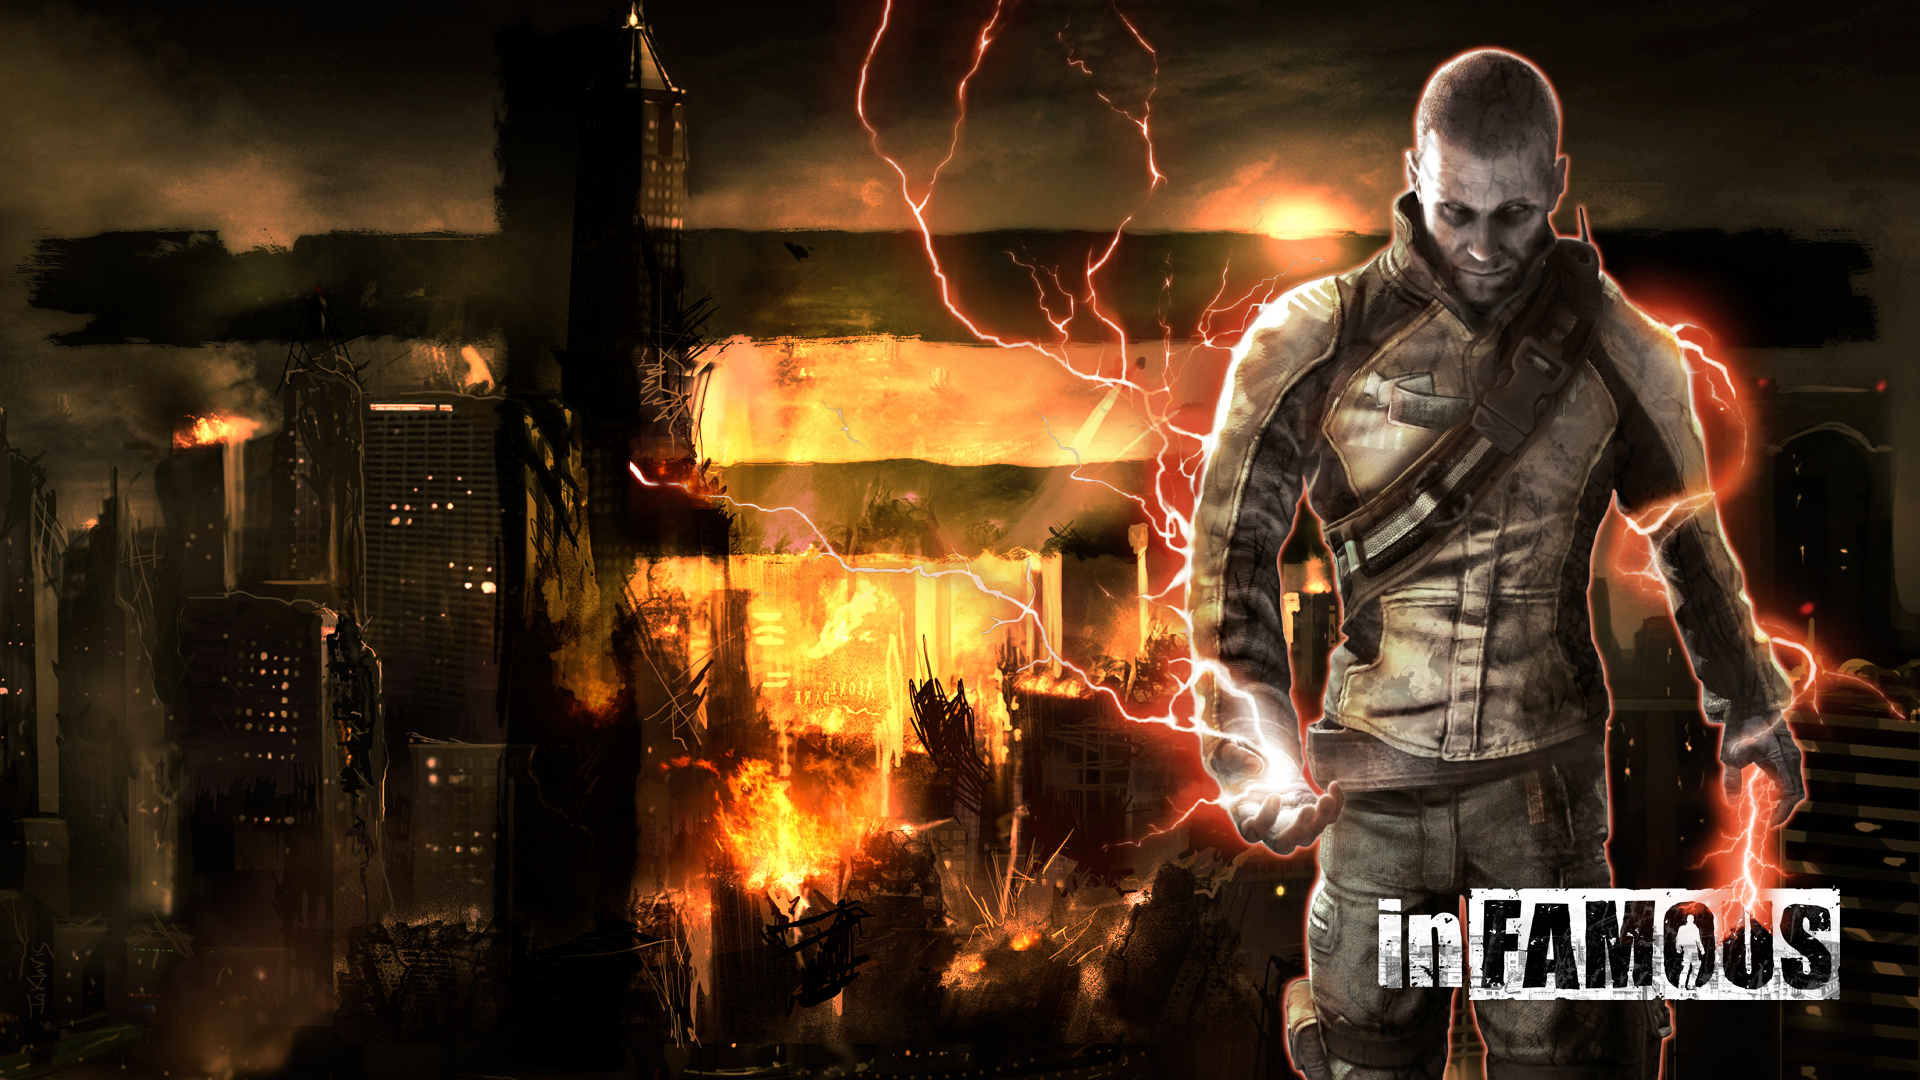 inFAMOUS PS3 Wallpaper by JaKhris on DeviantArt